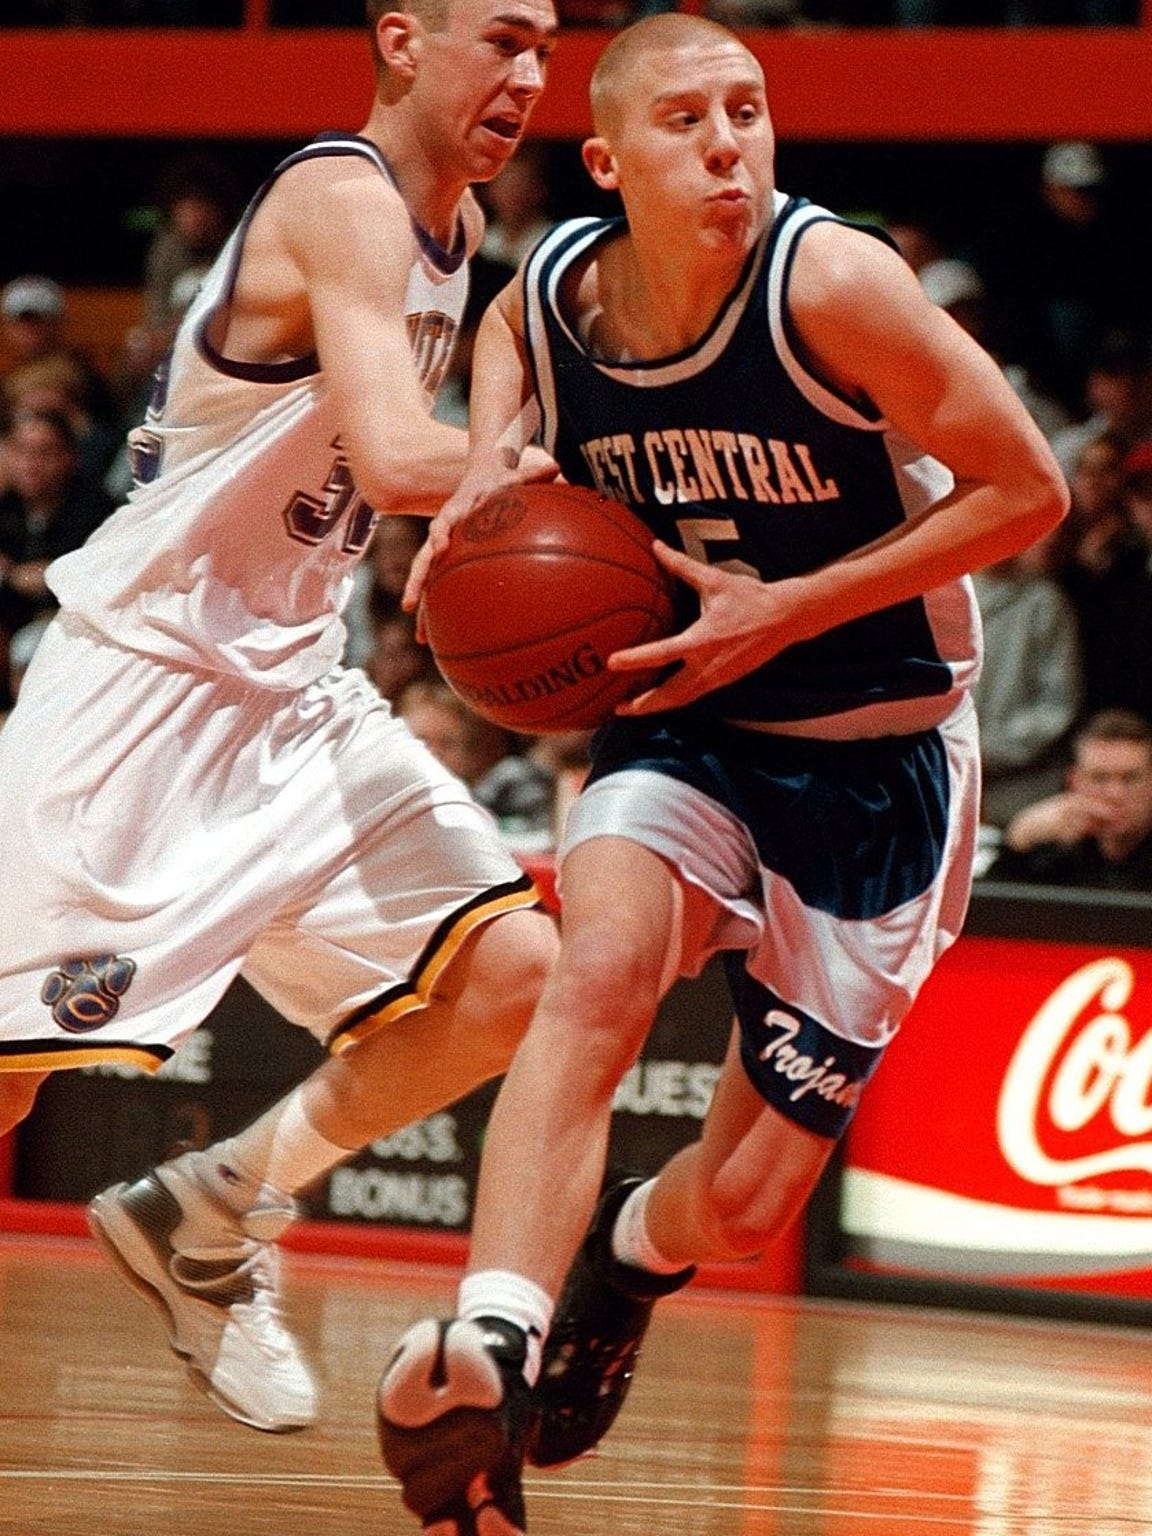 West Central's Josh Mueller was Argus Leader Player of the Year for 2001.